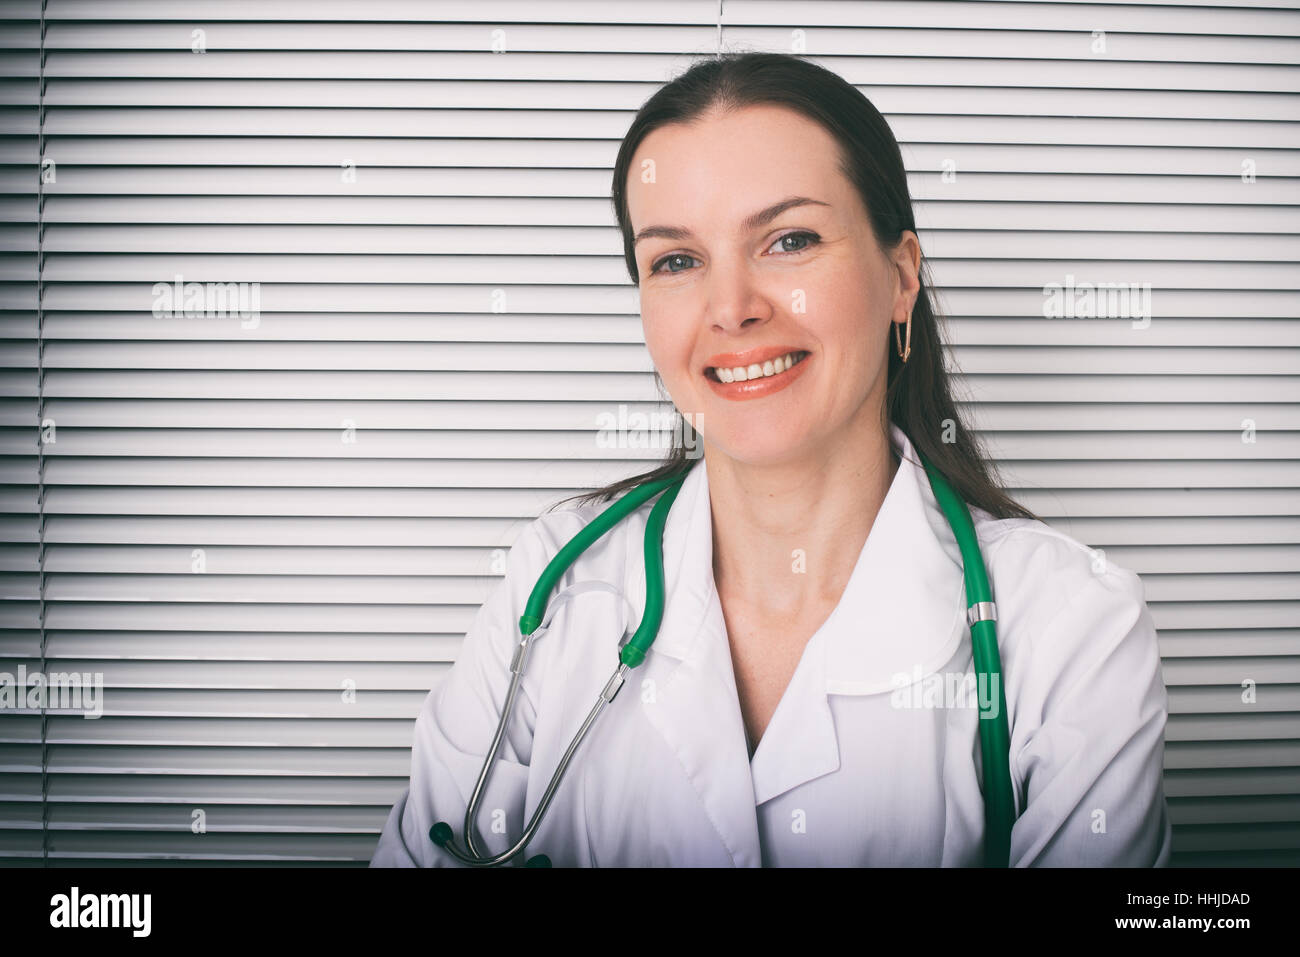 Portrait of Smiling female doctor in hospital - Stock Image